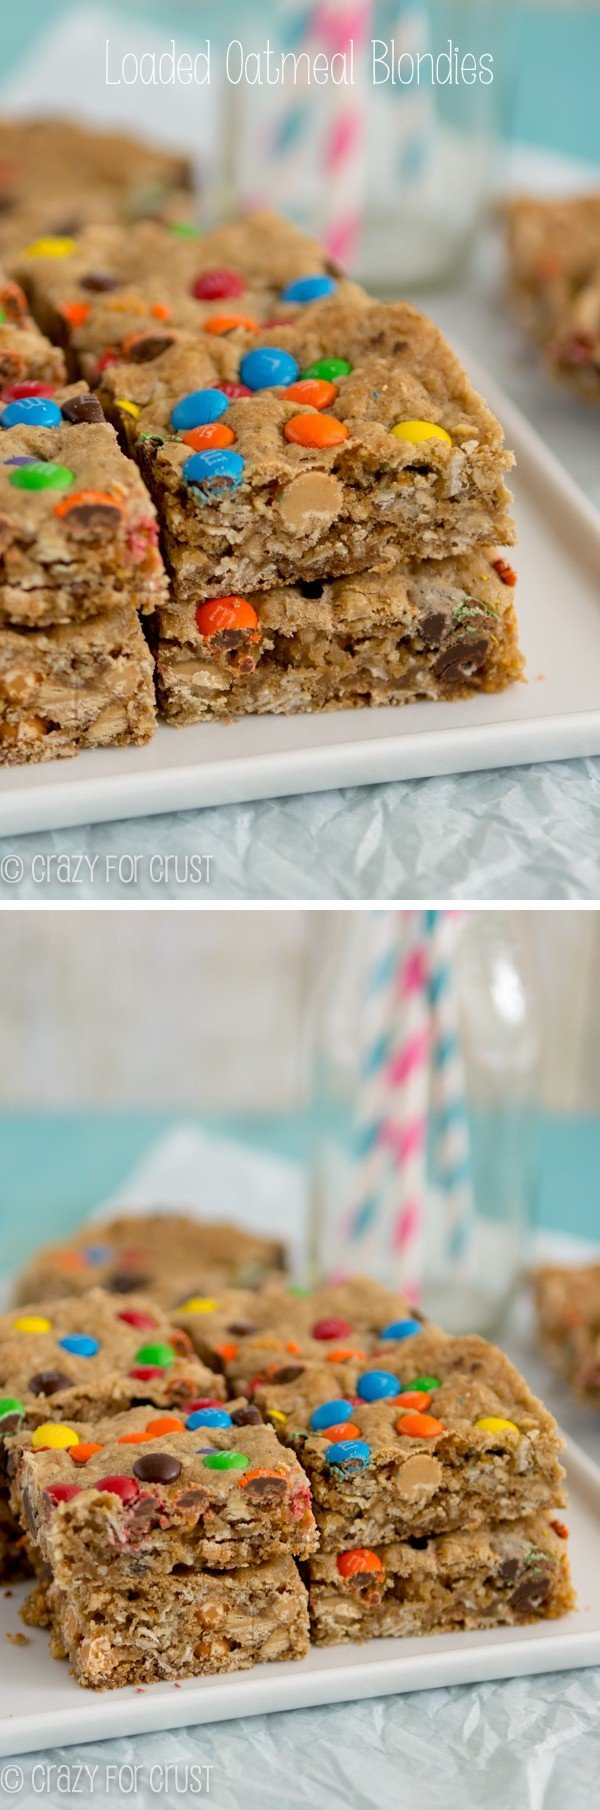 Loaded Oatmeal Blondies recipe - clean out your pantry to make the best blondies ever!